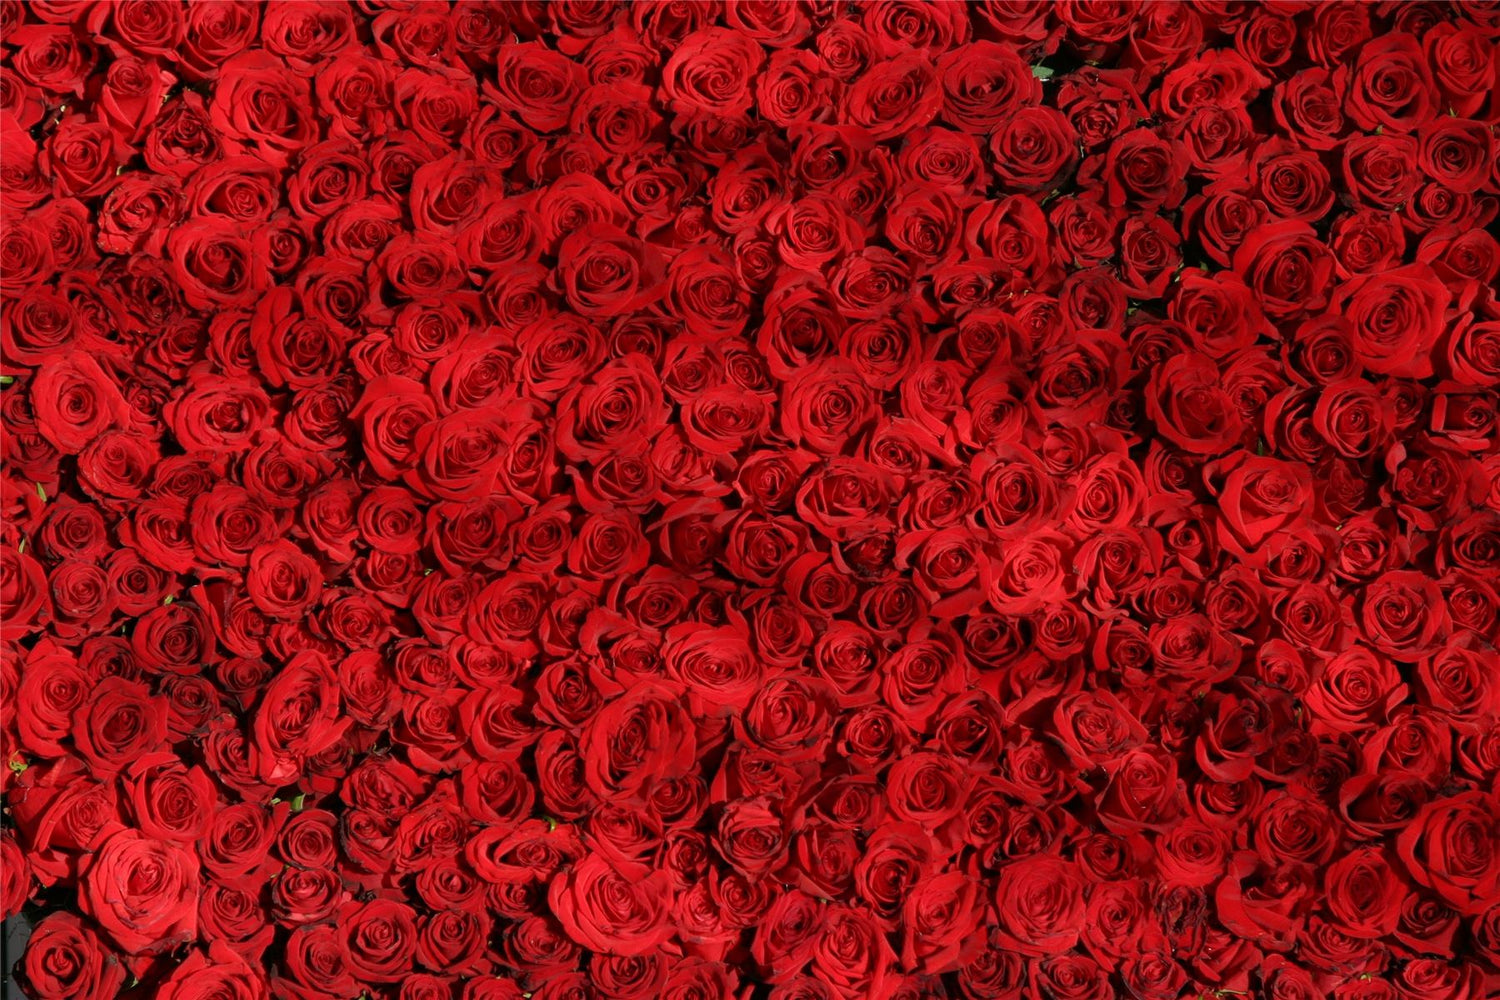 Dozens of Roses - Impuzzible No. 19 - 1000 Piece Jigsaw Puzzle